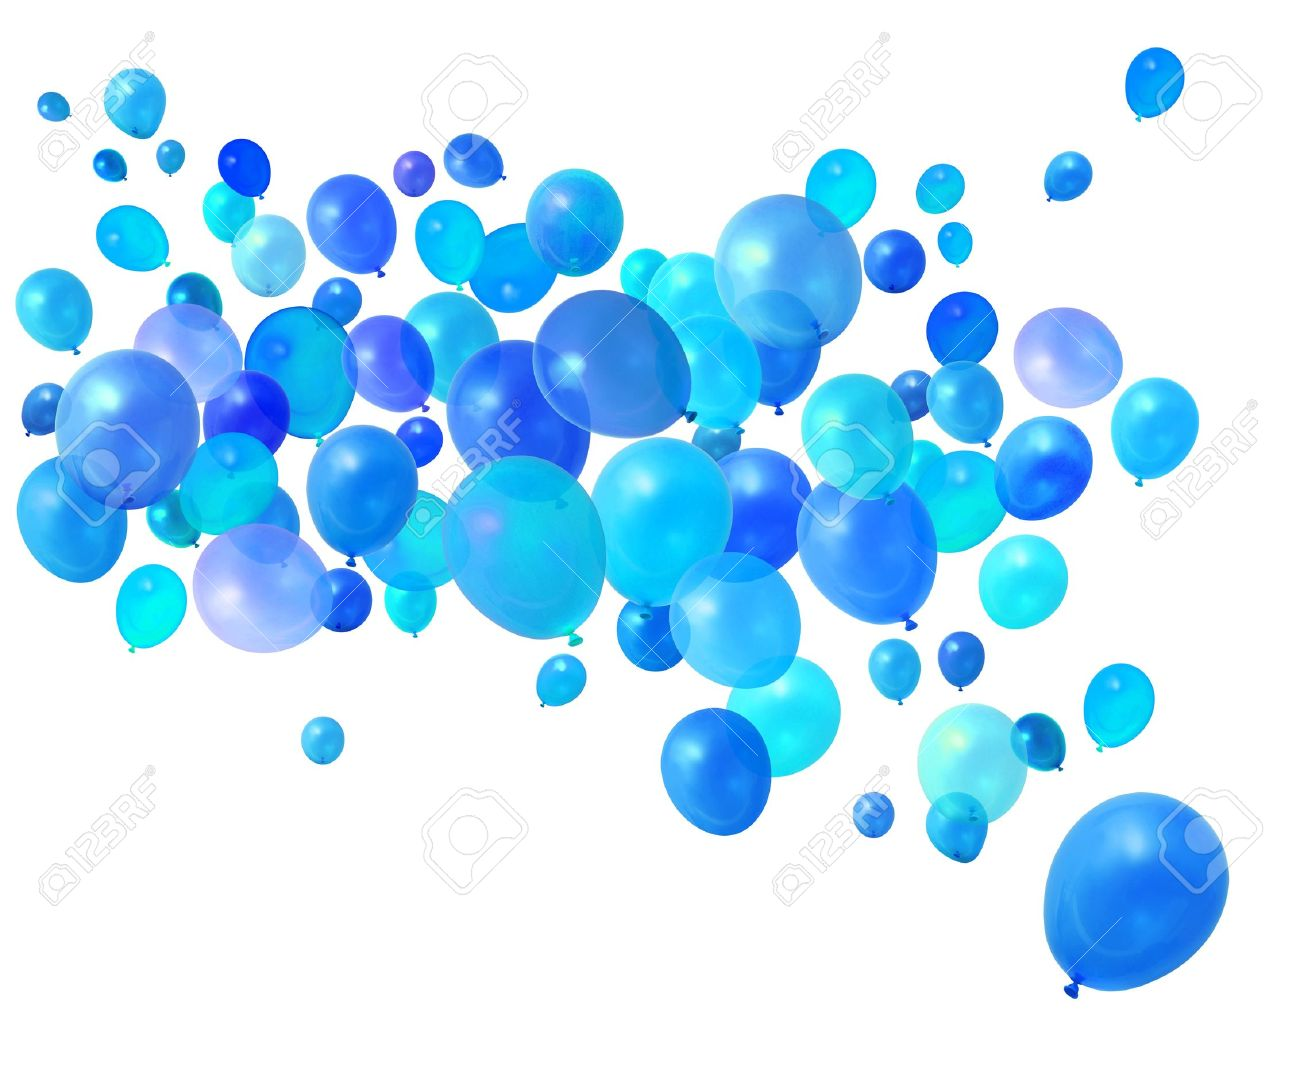 Blue Birthday Party Balloons Flying On White Background Stock Photo